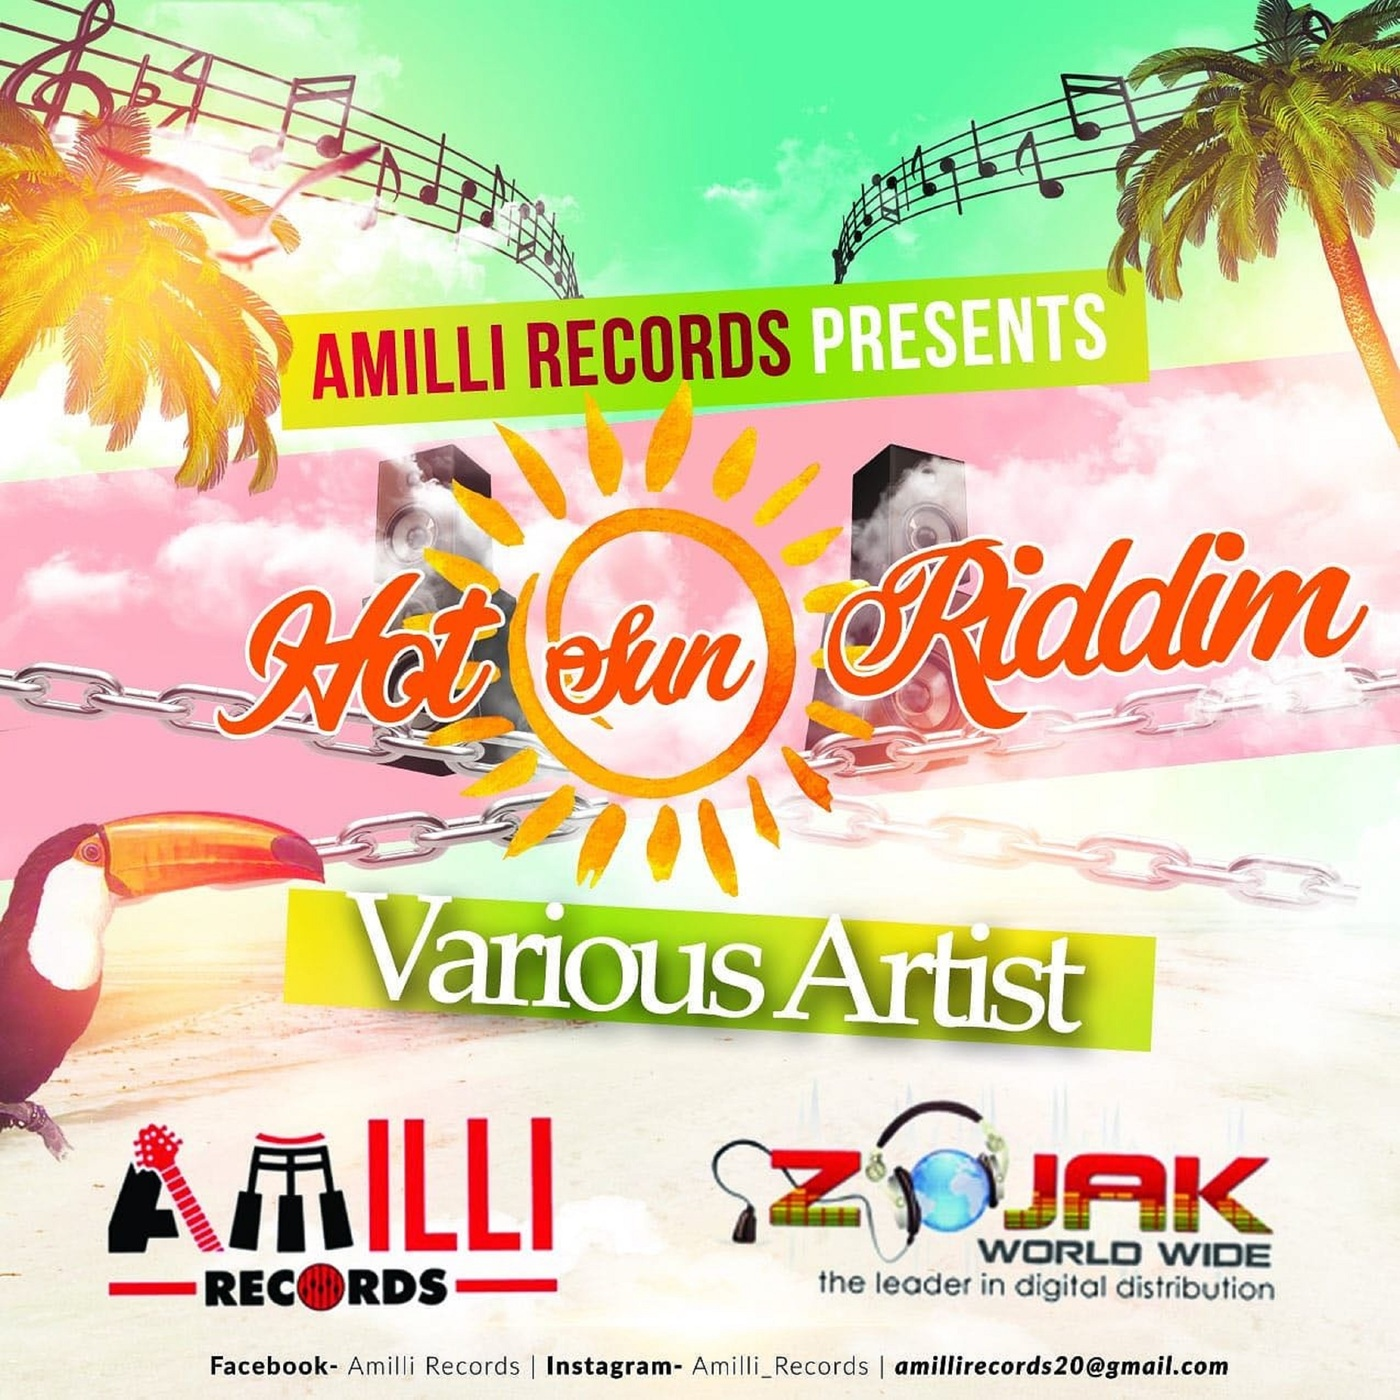 HOT SUN RIDDIM (DANCEHALL) - AMILLI RECORDS - 2018 | Reggae